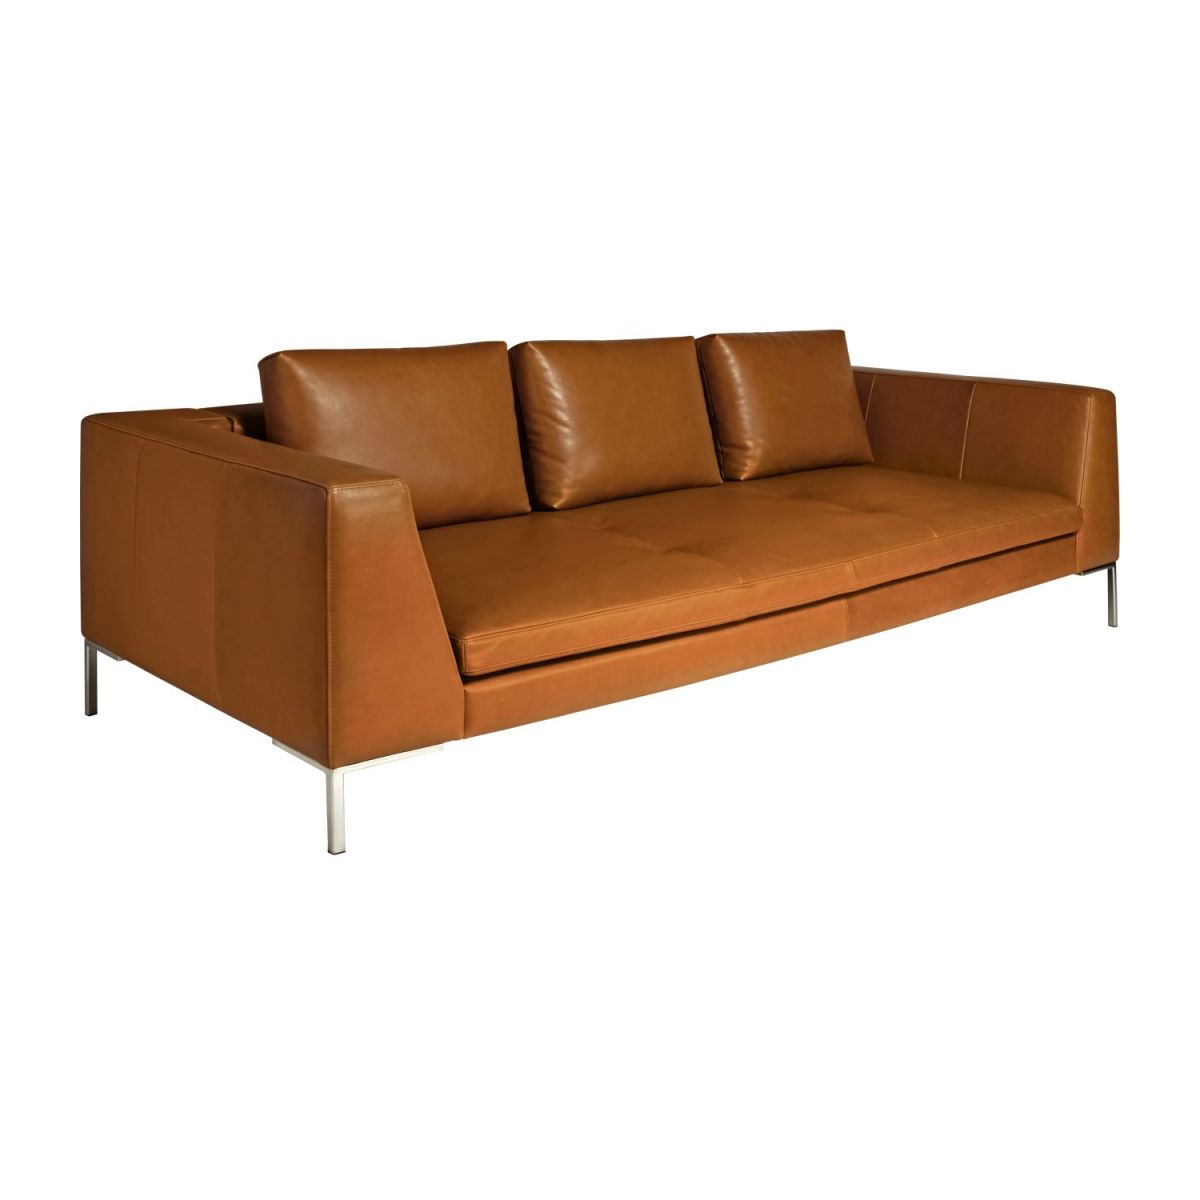 3-Sitzer Sofa aus Anilinleder Vintage Leather old chestnut n°1